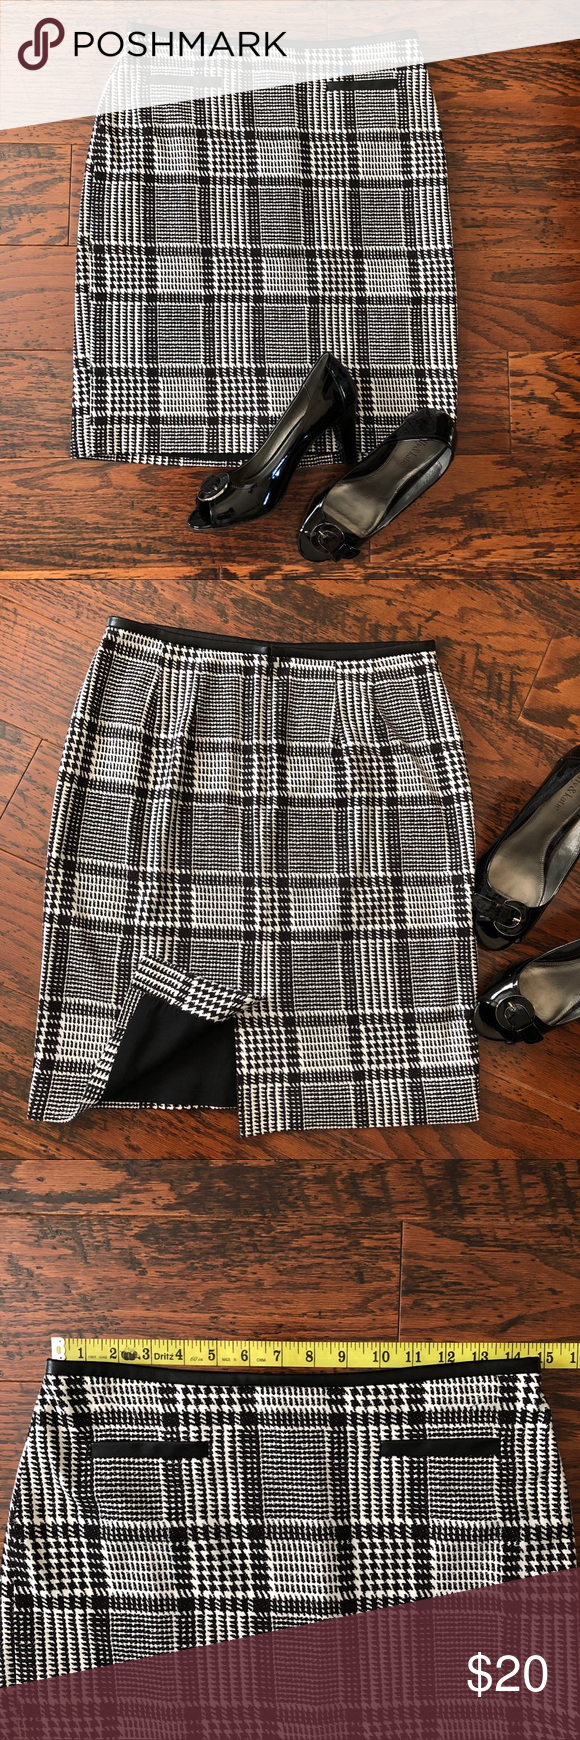 21c29af538 Sz 6P: Talbots Plaid Skirt w/ Faux Leather Trim Timeless houndstooth plaid  in black and white - shell is rayon/nylon mix with spandex for perfect fit.